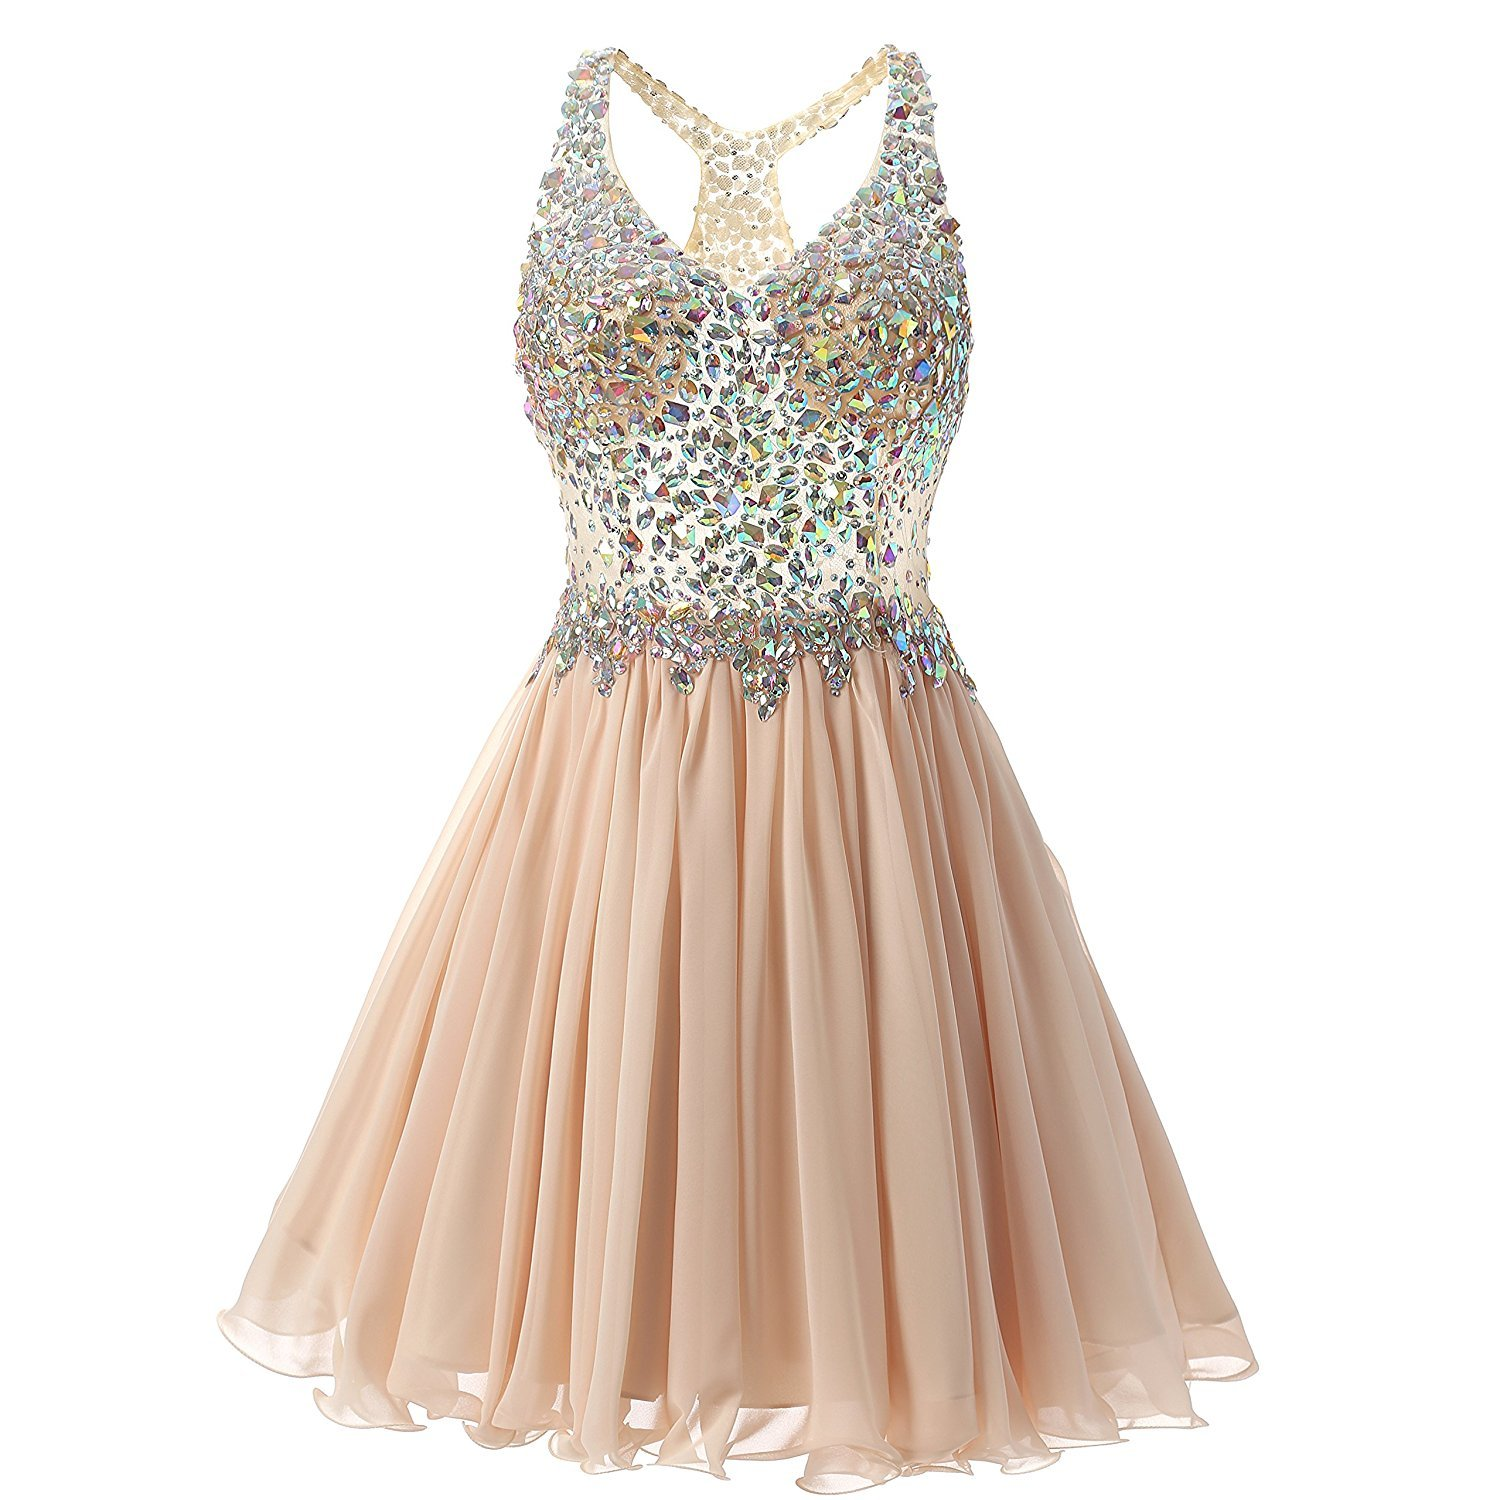 Primary image for Short V Neck Prom Dresses Sexy Beaded Chiffon Homecoming Dress Birthday Dress